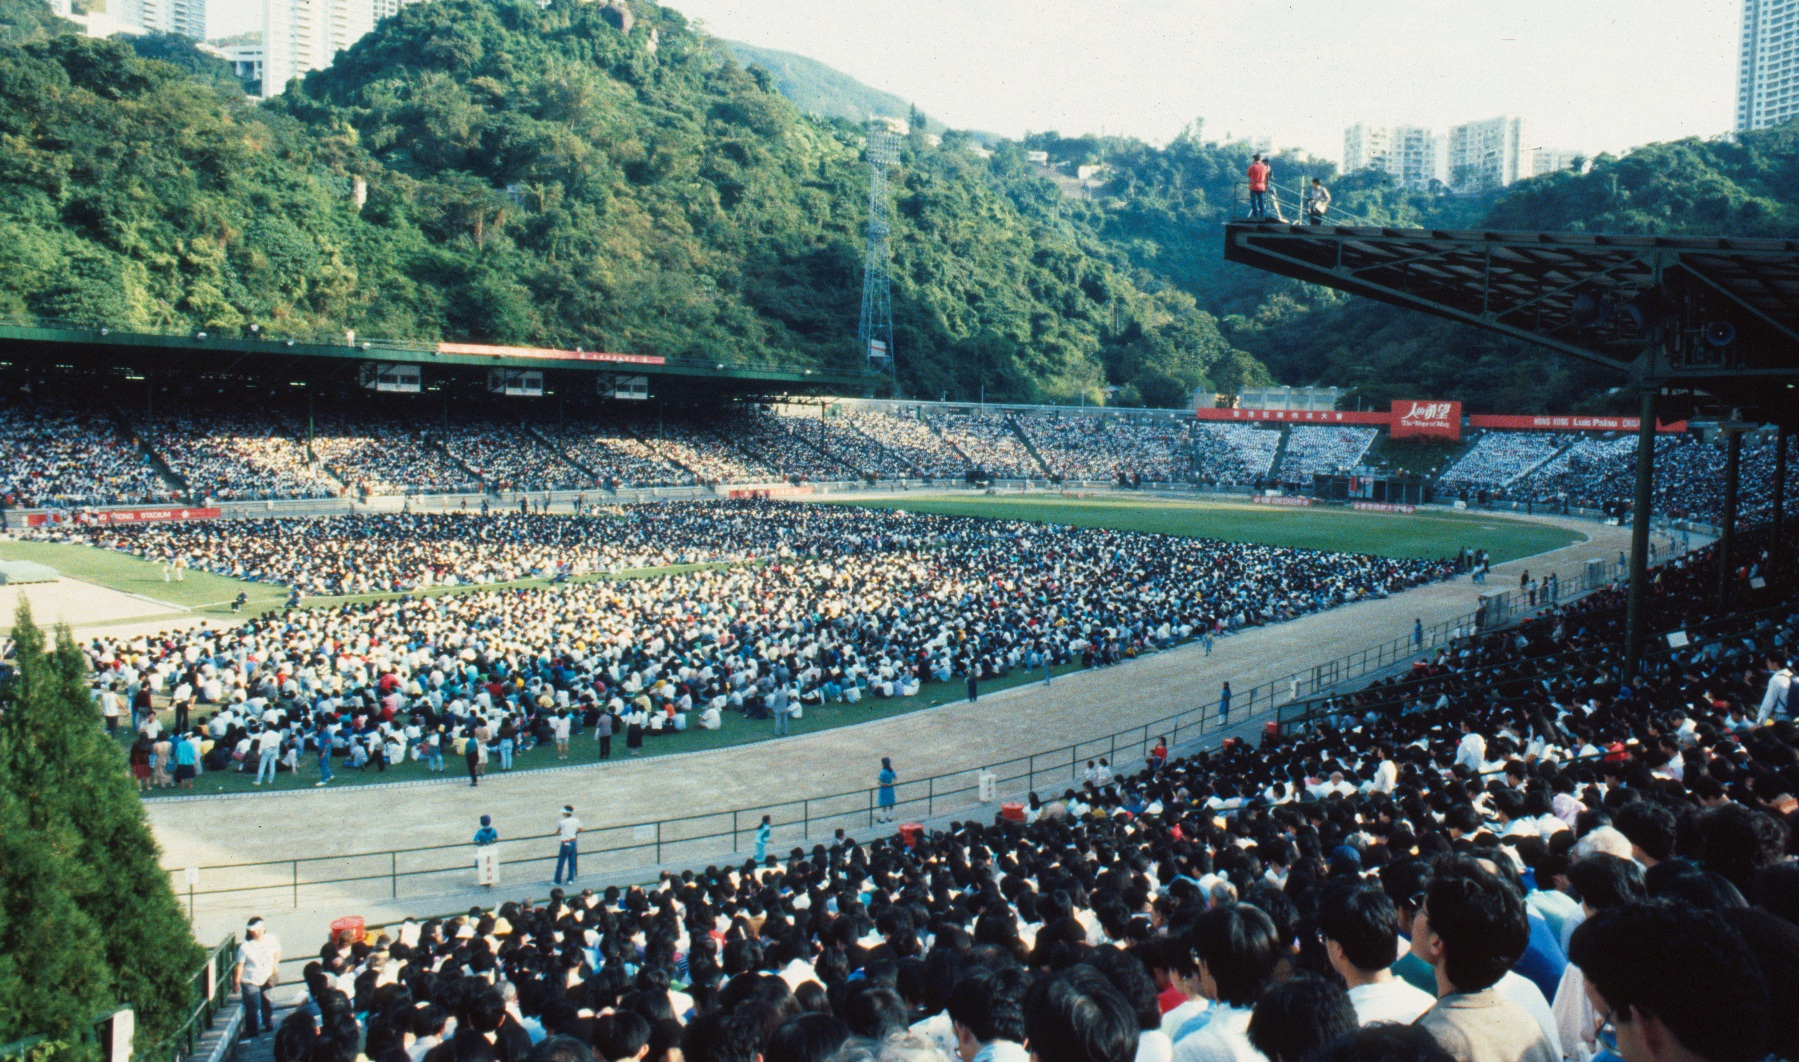 Luis Palau's Hong Kong Crusade in 1997 sets records of decisions for Jesus.